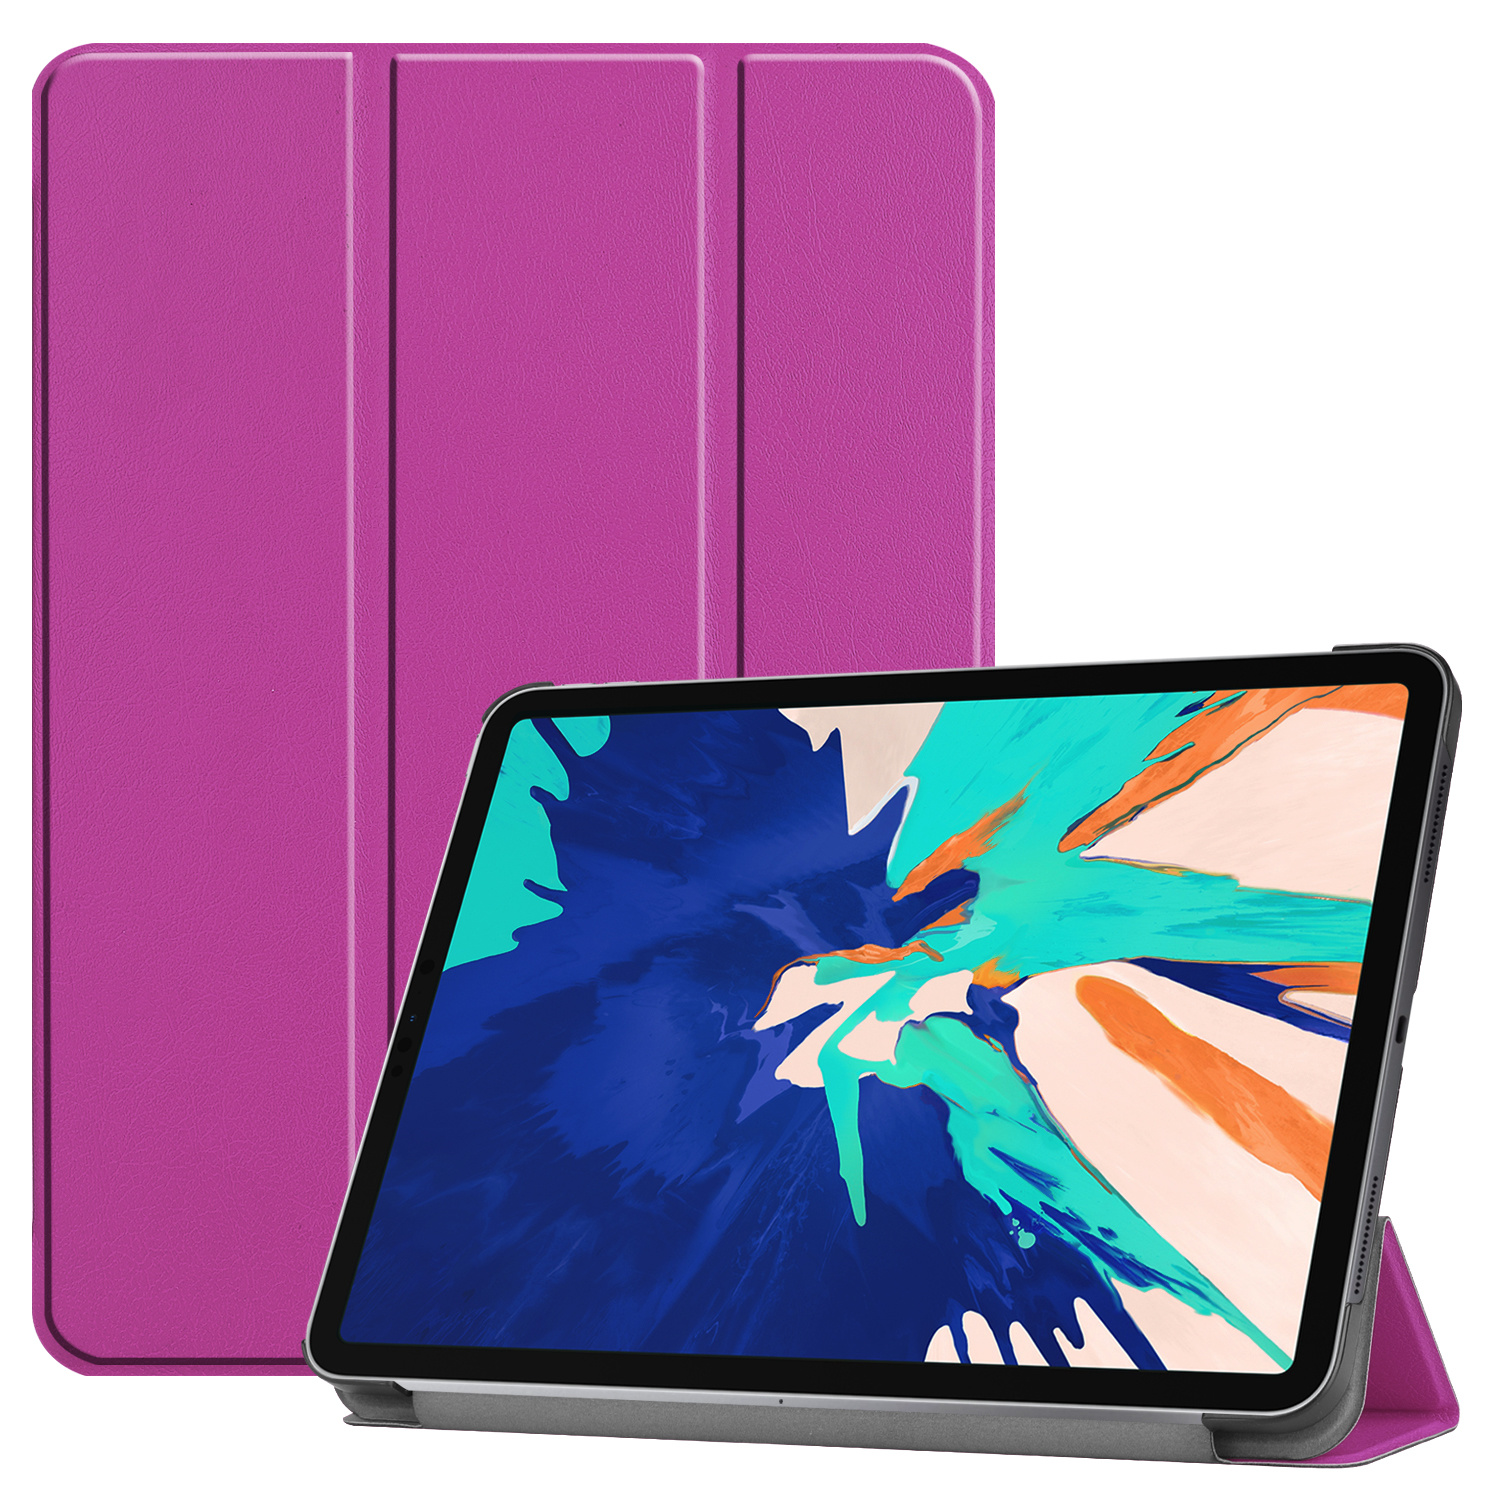 3-Vouw sleepcover hoes - iPad Pro 12.9 inch (2020) - Paars